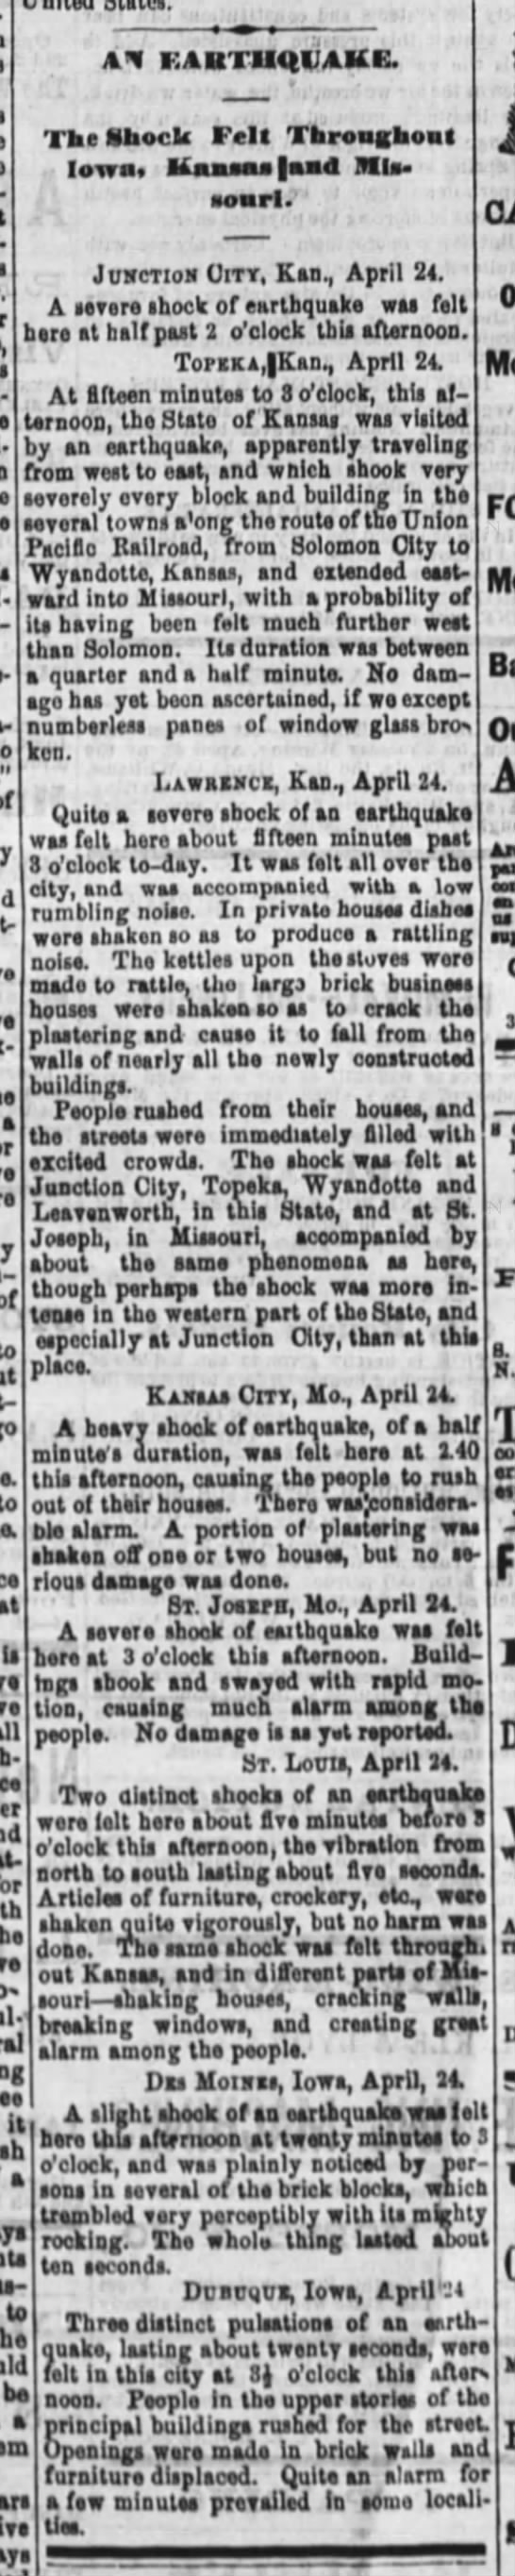 1867 Earthquake KS, IA, and MO newspaper article. - Tom Malmay - - - a of to to tt all tor be - - At KAUTUQVAUB....